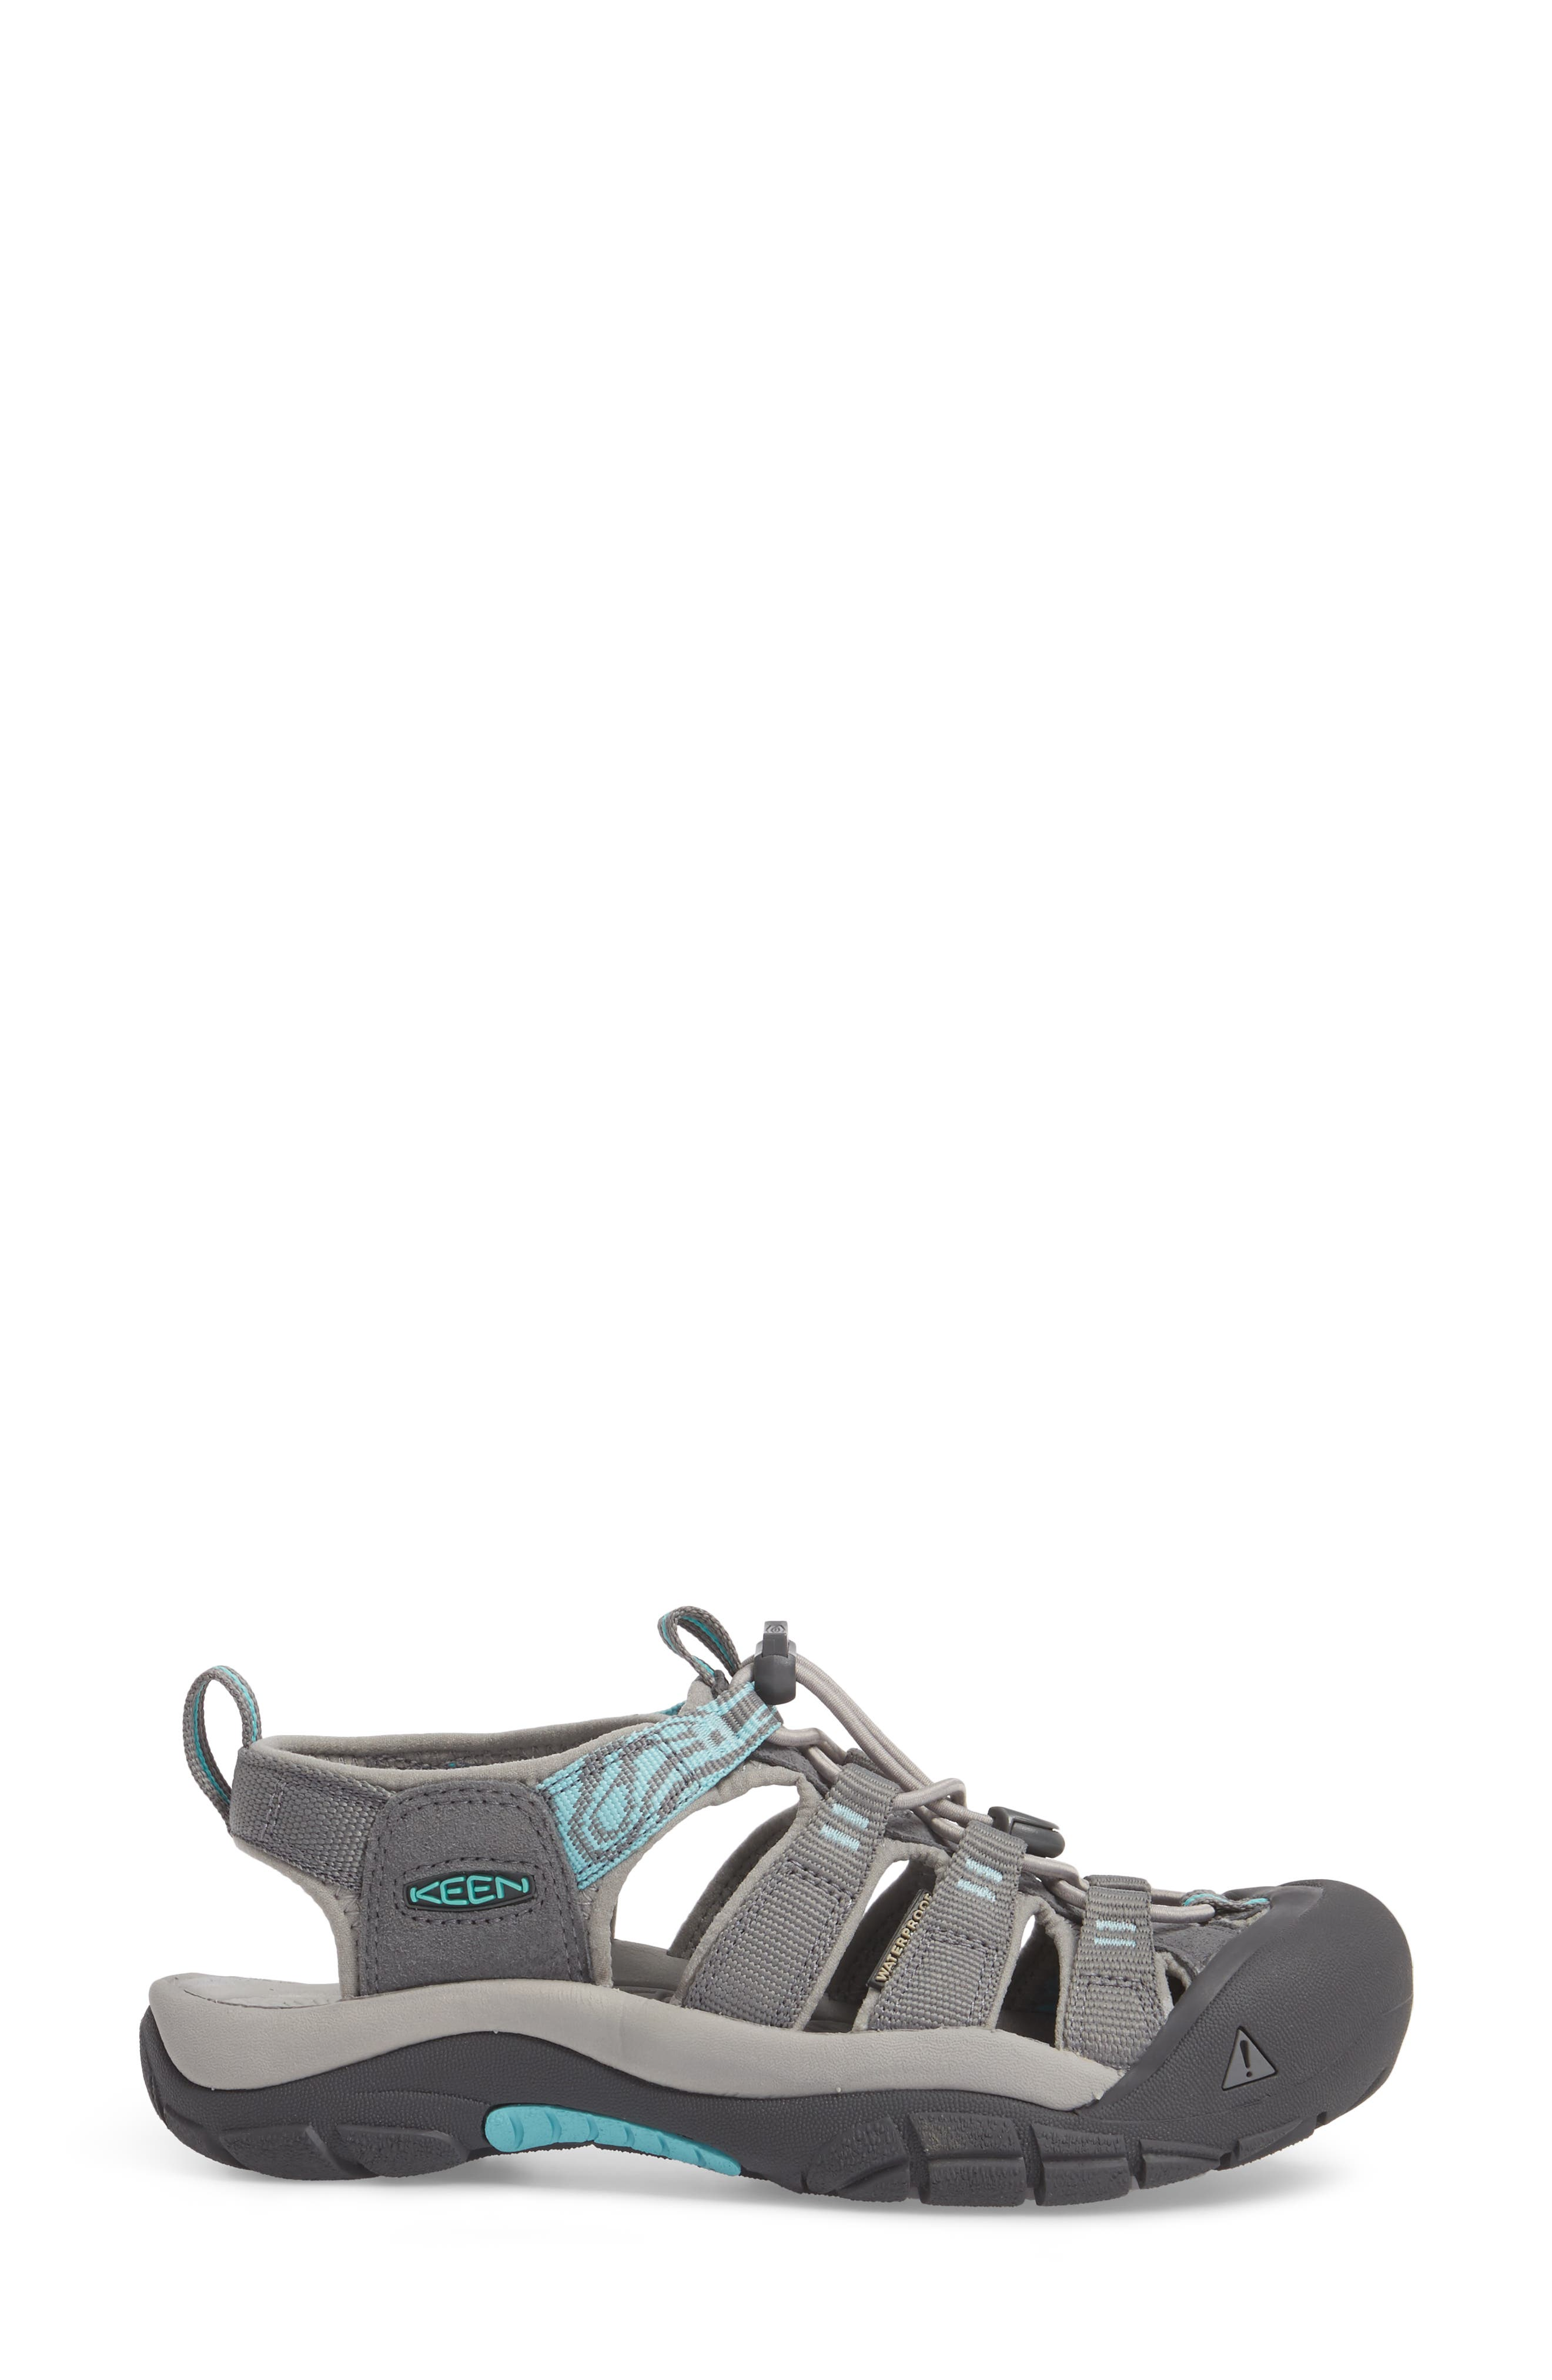 Newport Hydro Sandal,                             Alternate thumbnail 3, color,                             Steel Grey/ Blue Turquoise